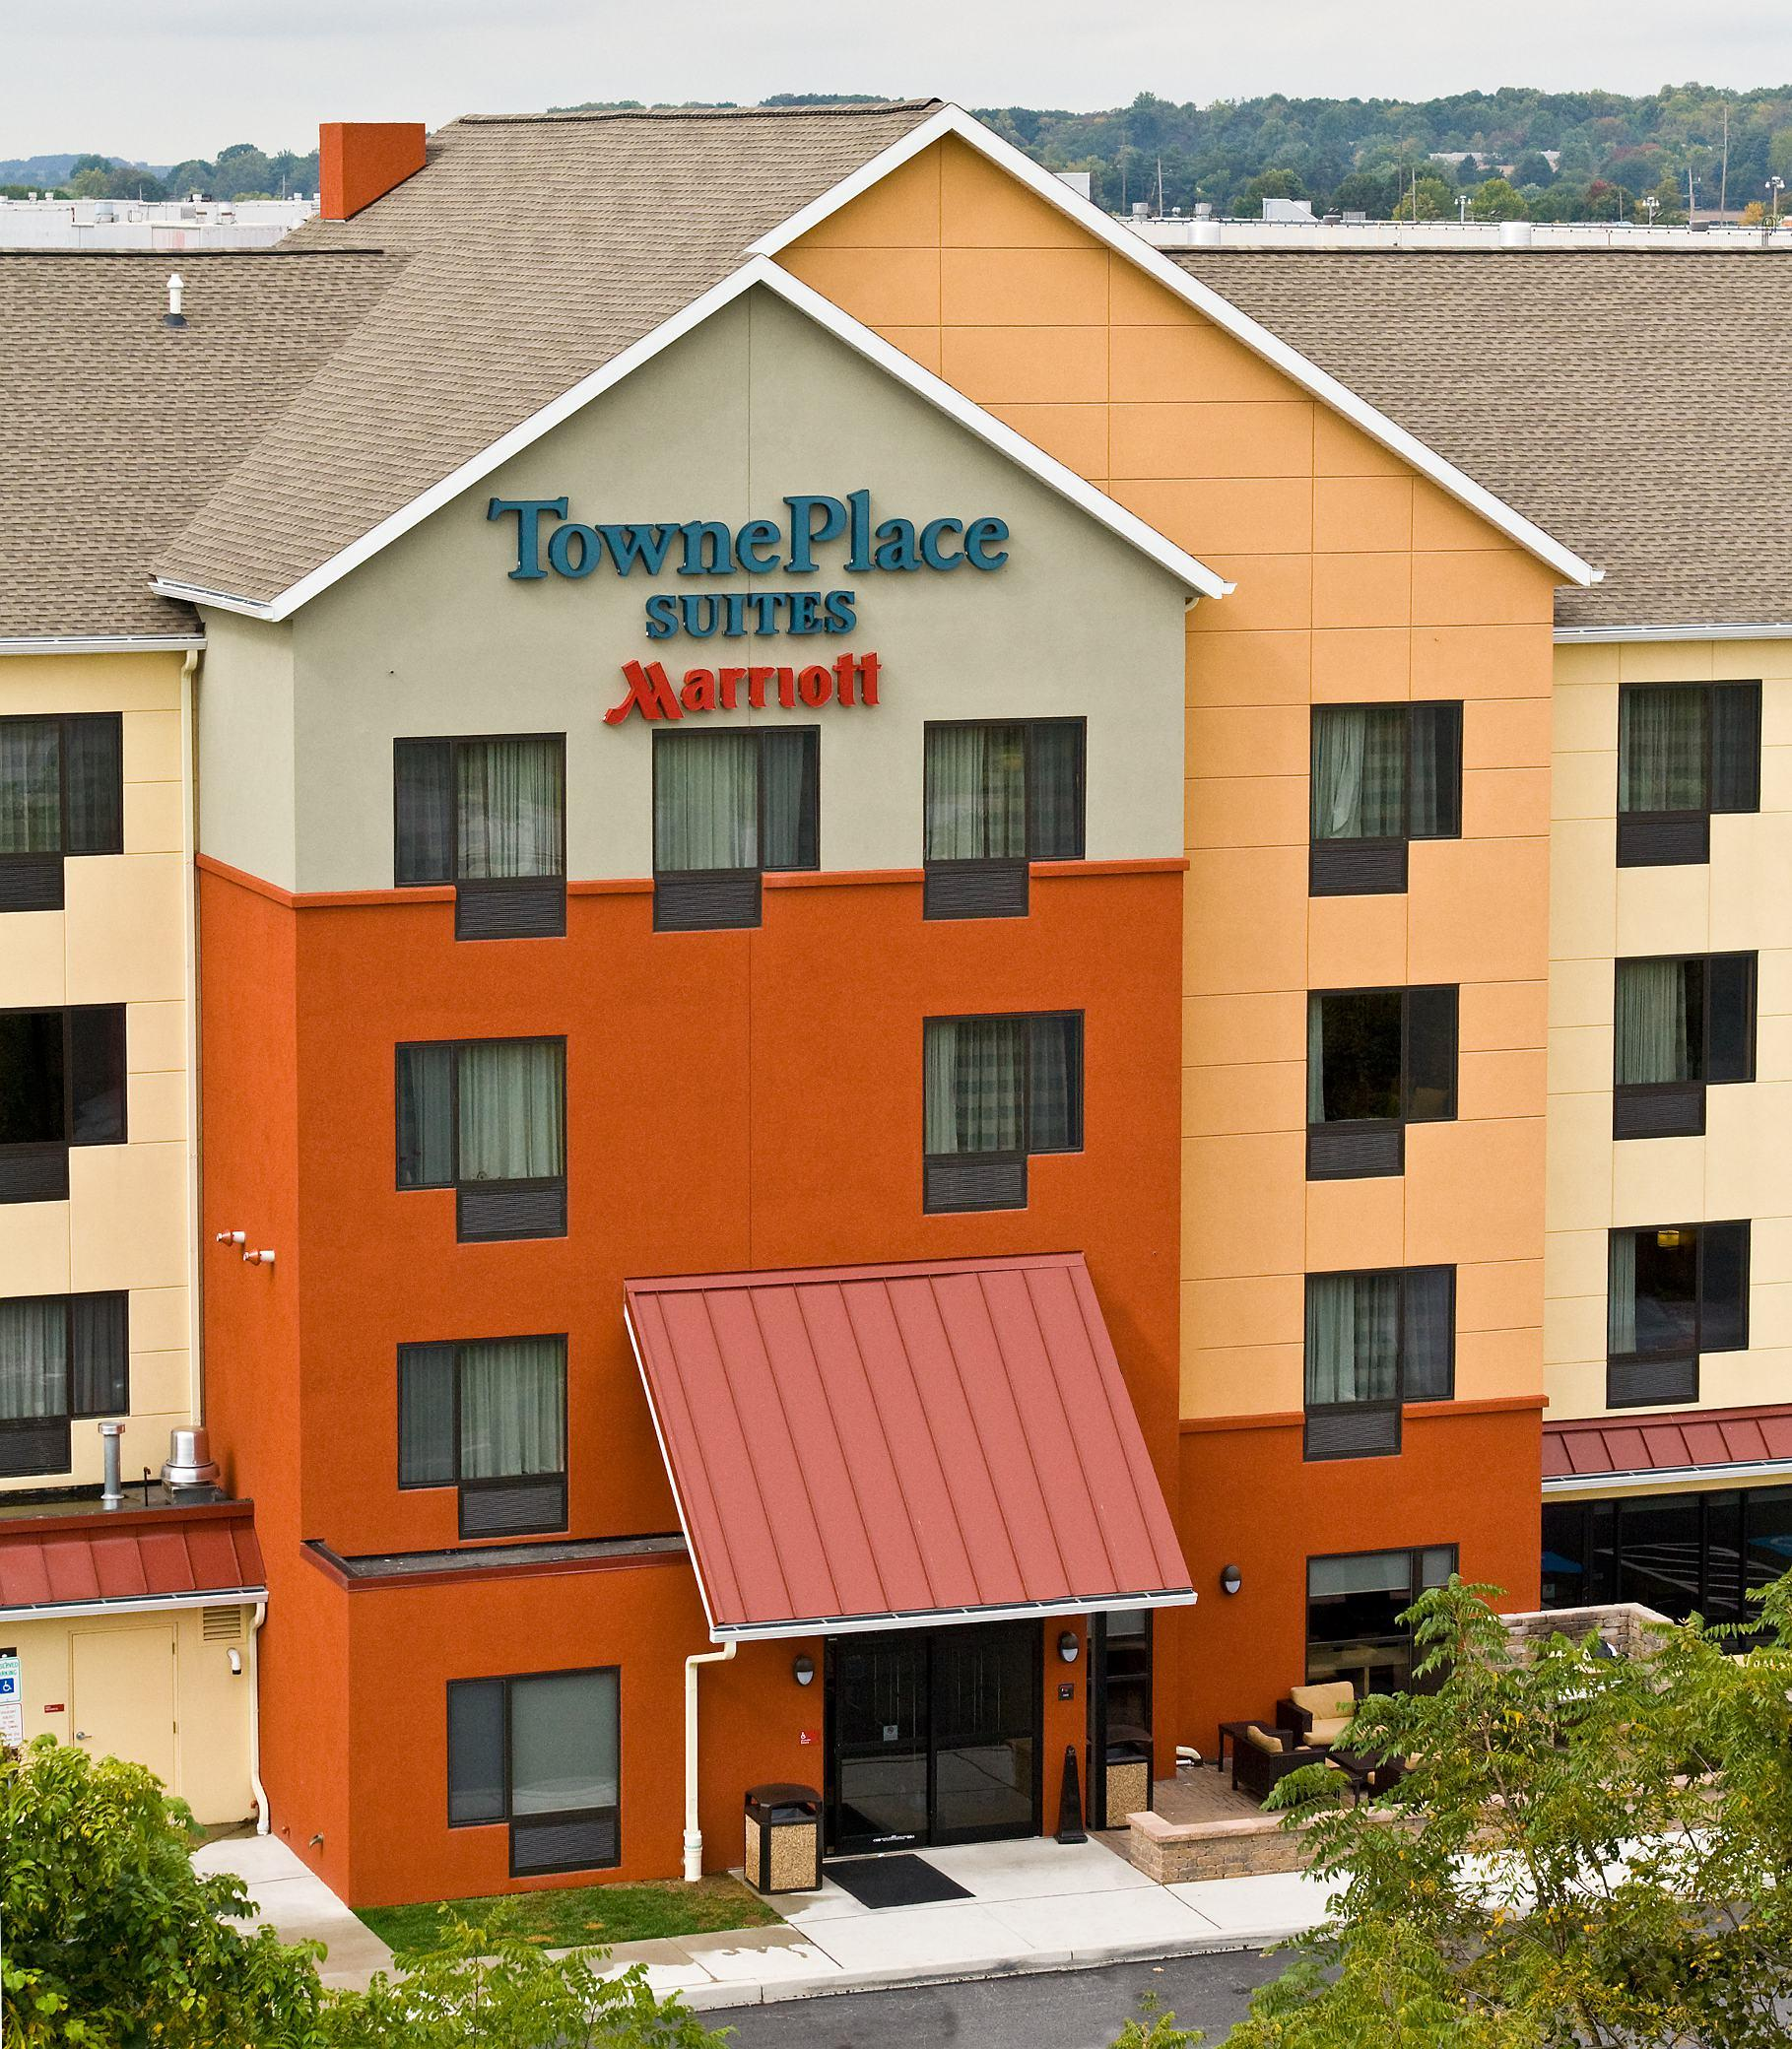 TownePlace Suites by Marriott York image 0